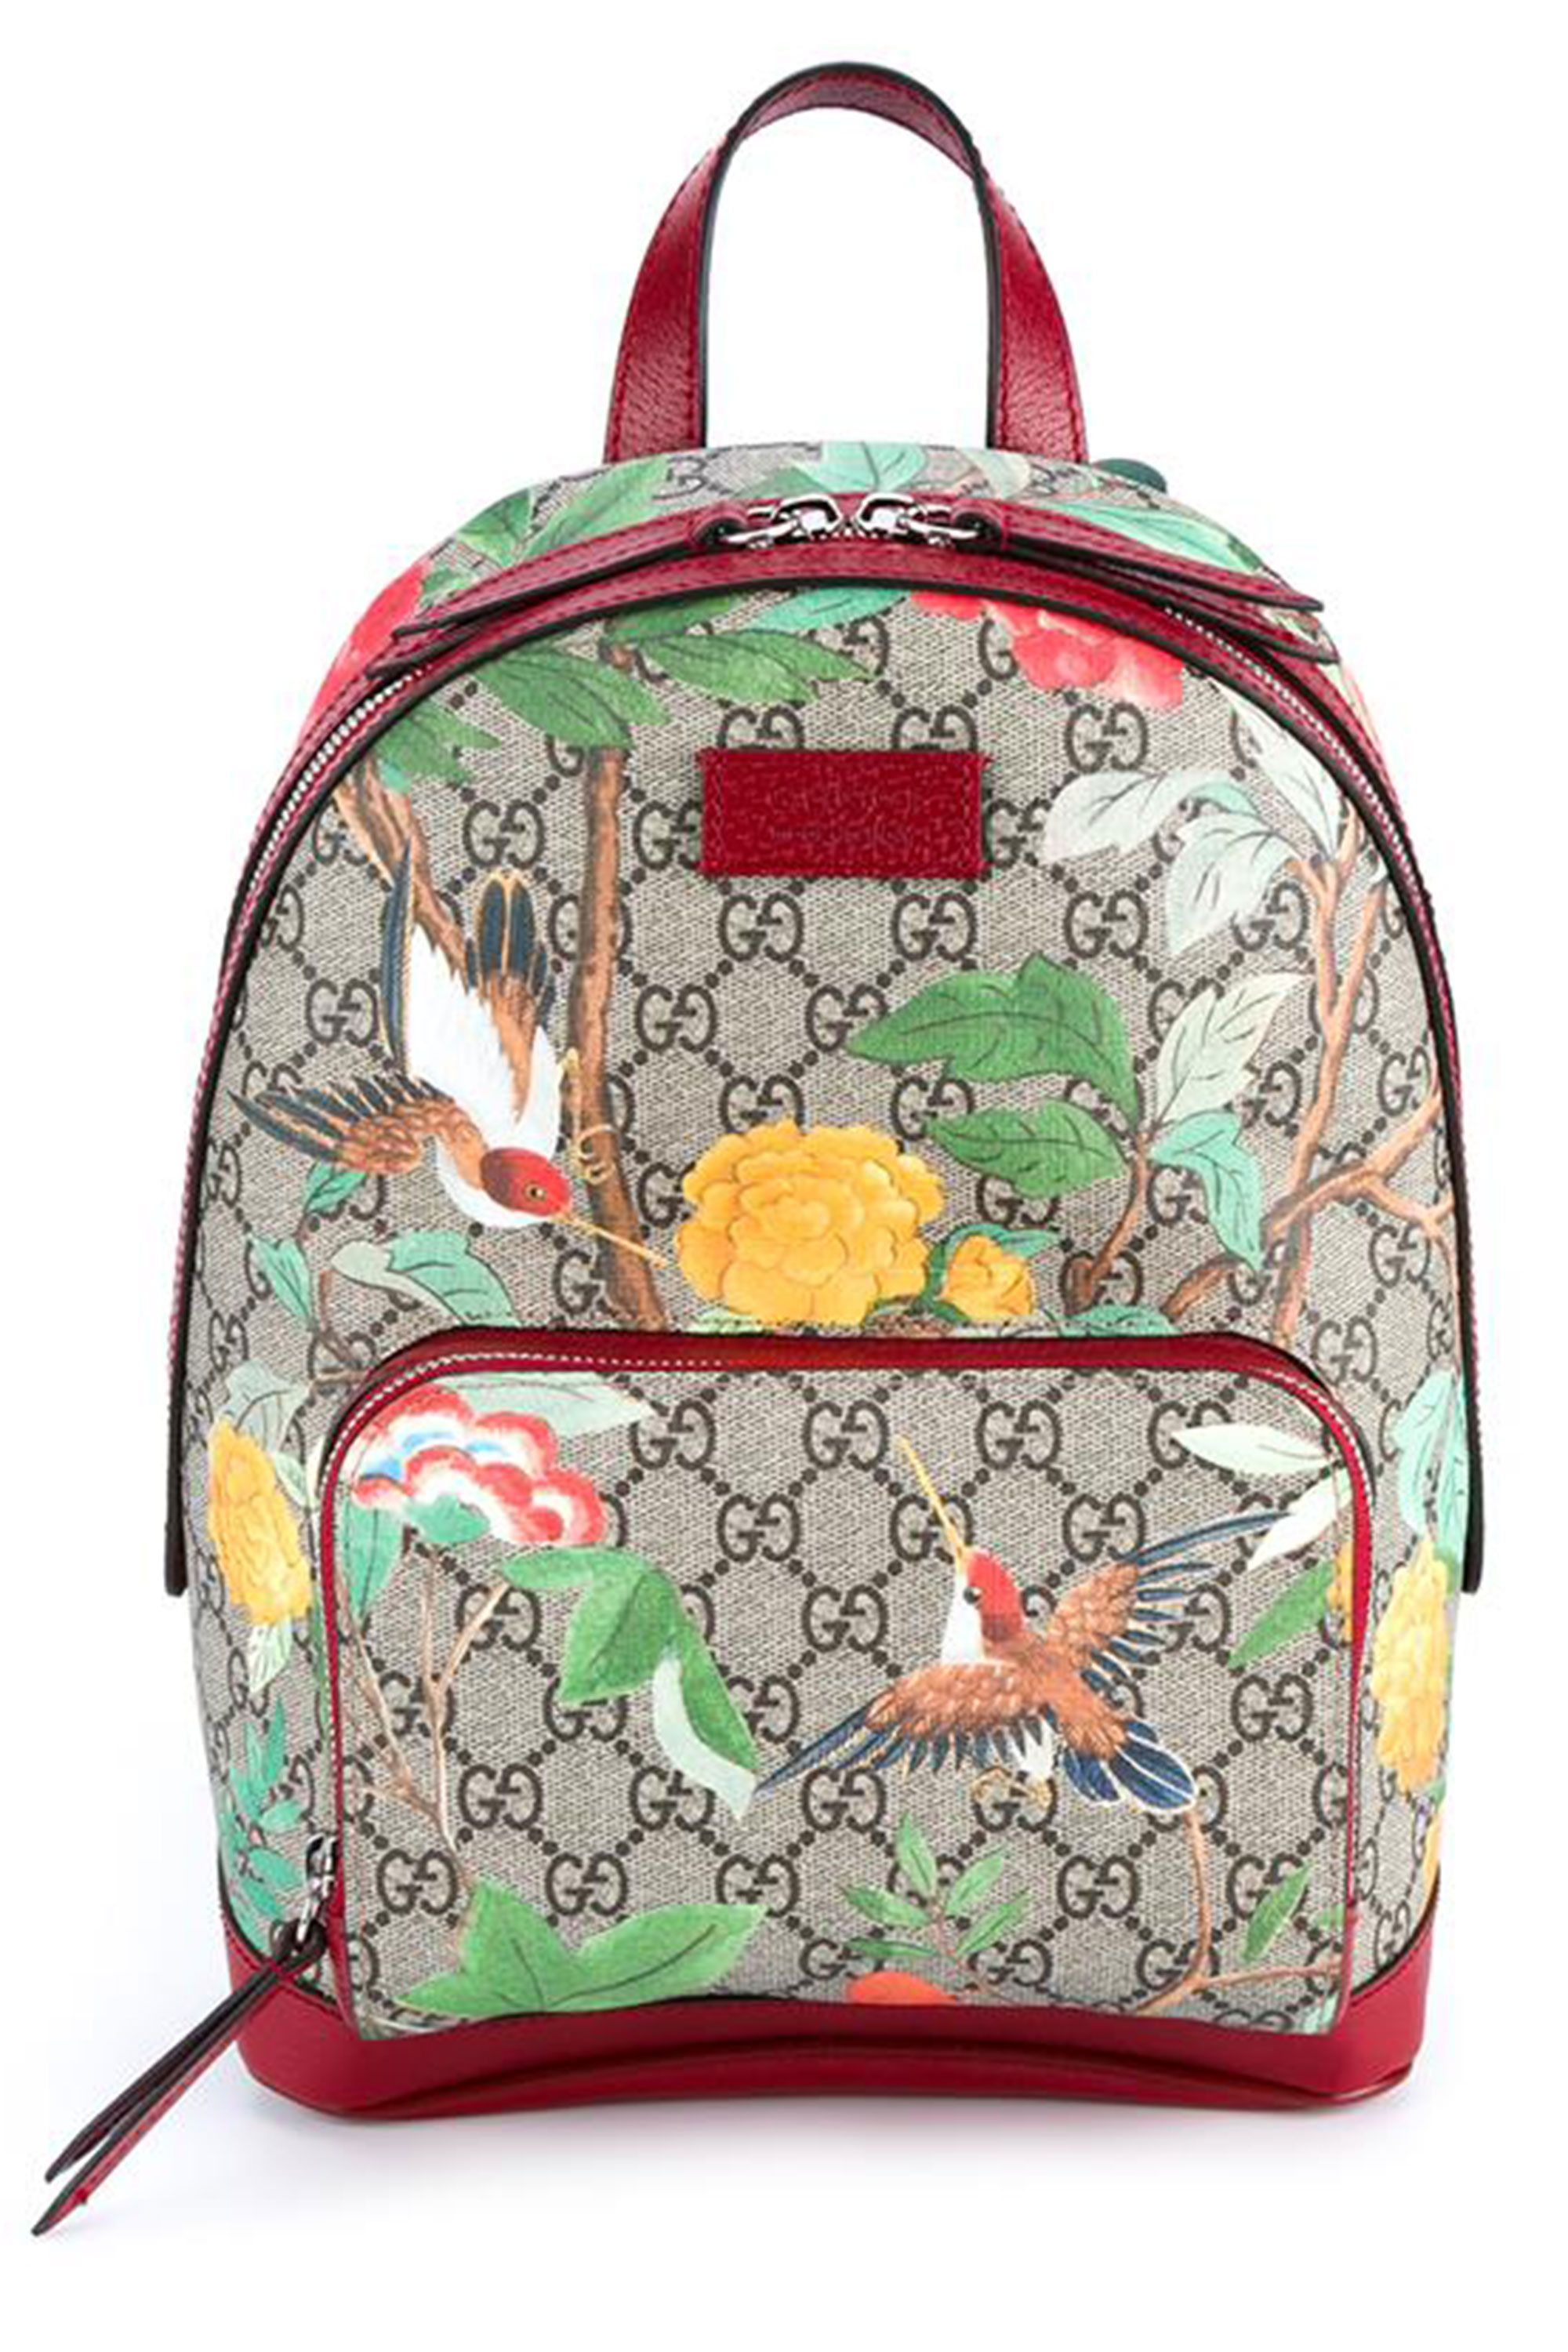 936c987f17a 10 of the most fashionable backpacks to buy this season